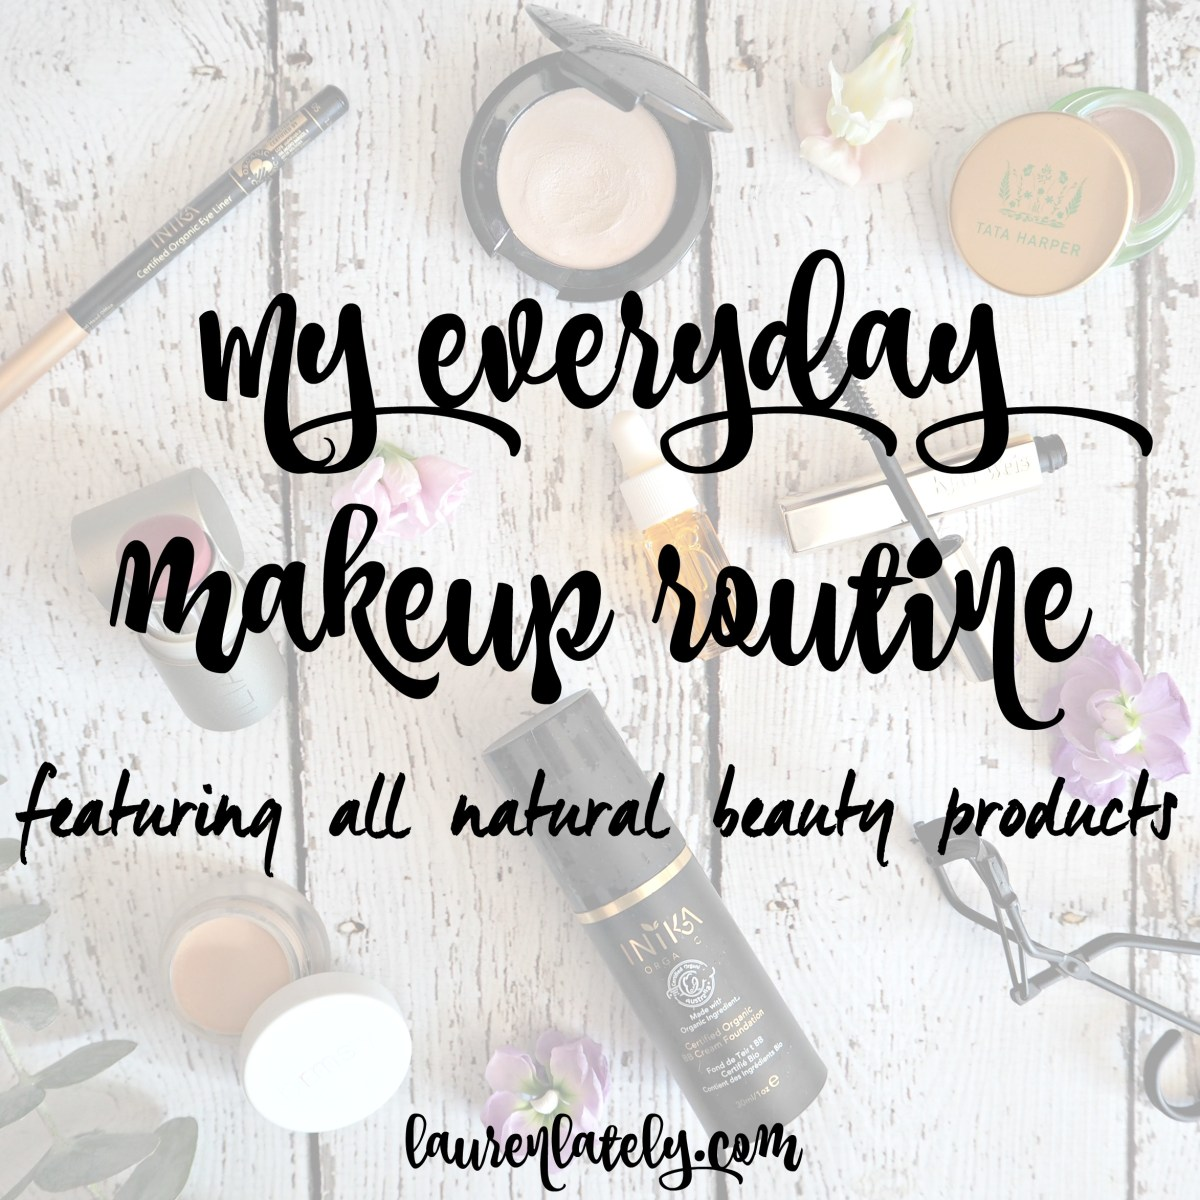 My everyday makeup routine (featuring all natural beauty products)